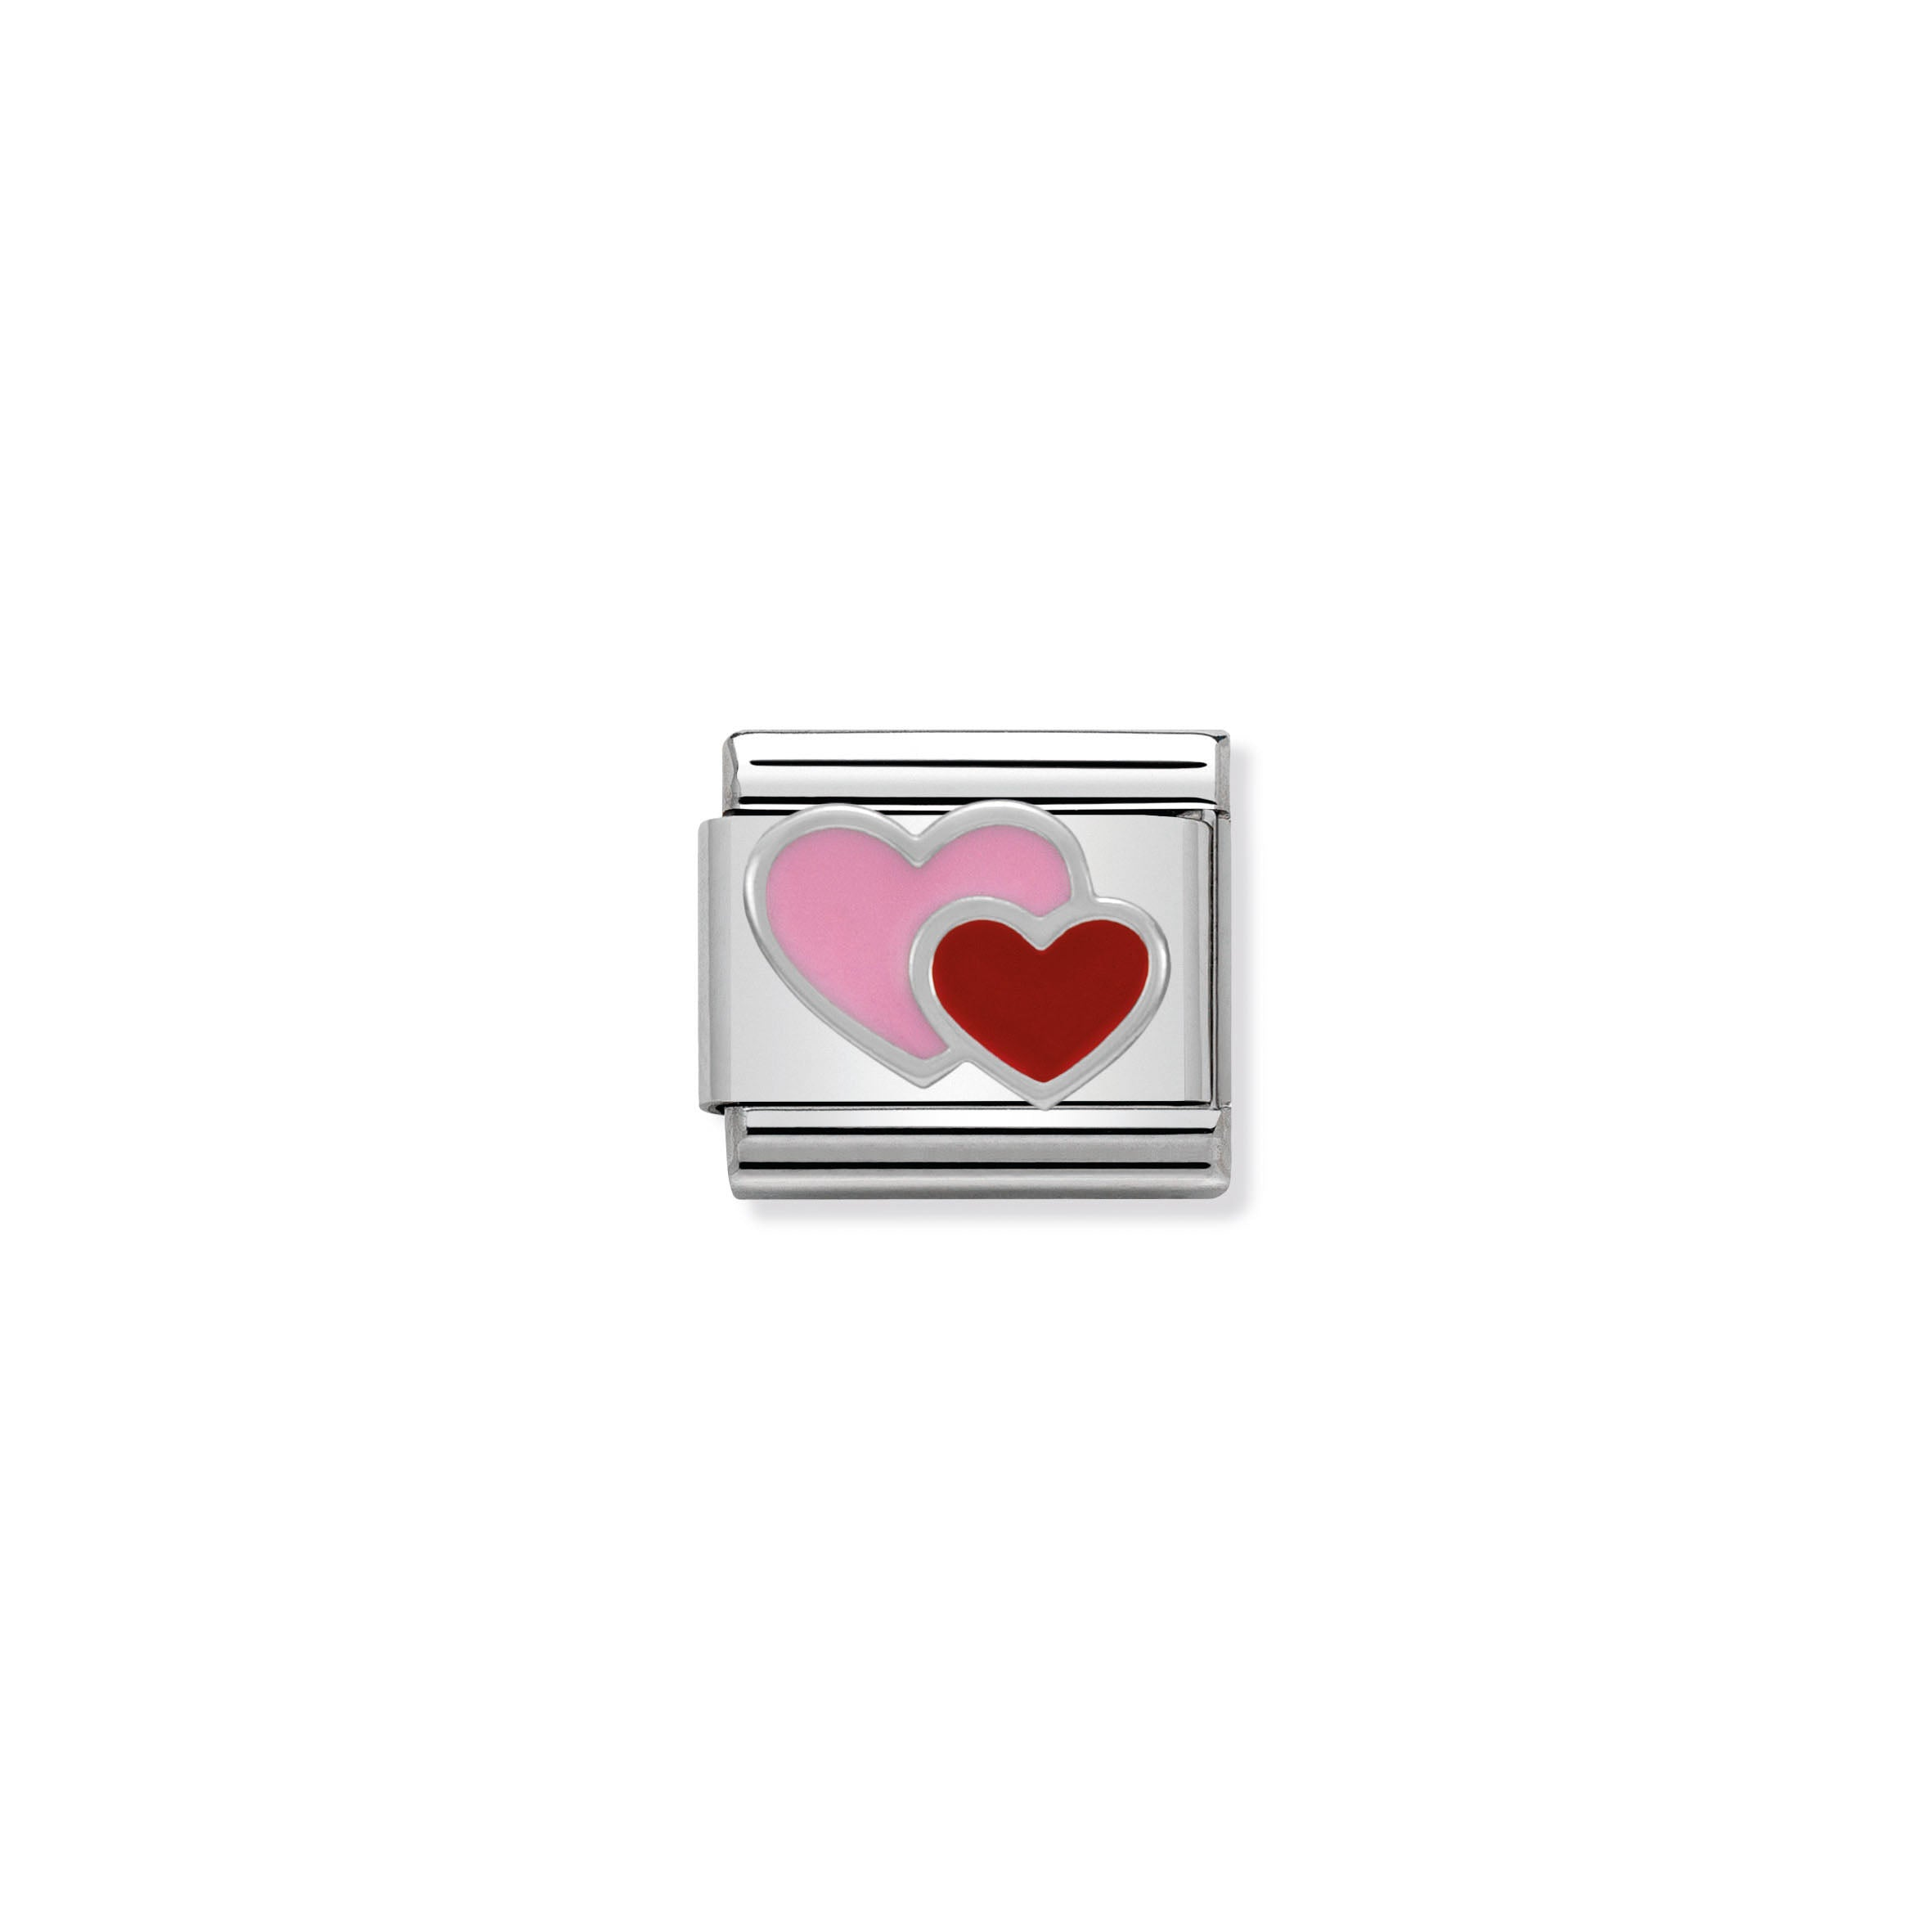 NOMINATION - Composable 330202 16 Classic SYMBOLS st/st, enamel & silver 925 (Pink & Red Double Heart)